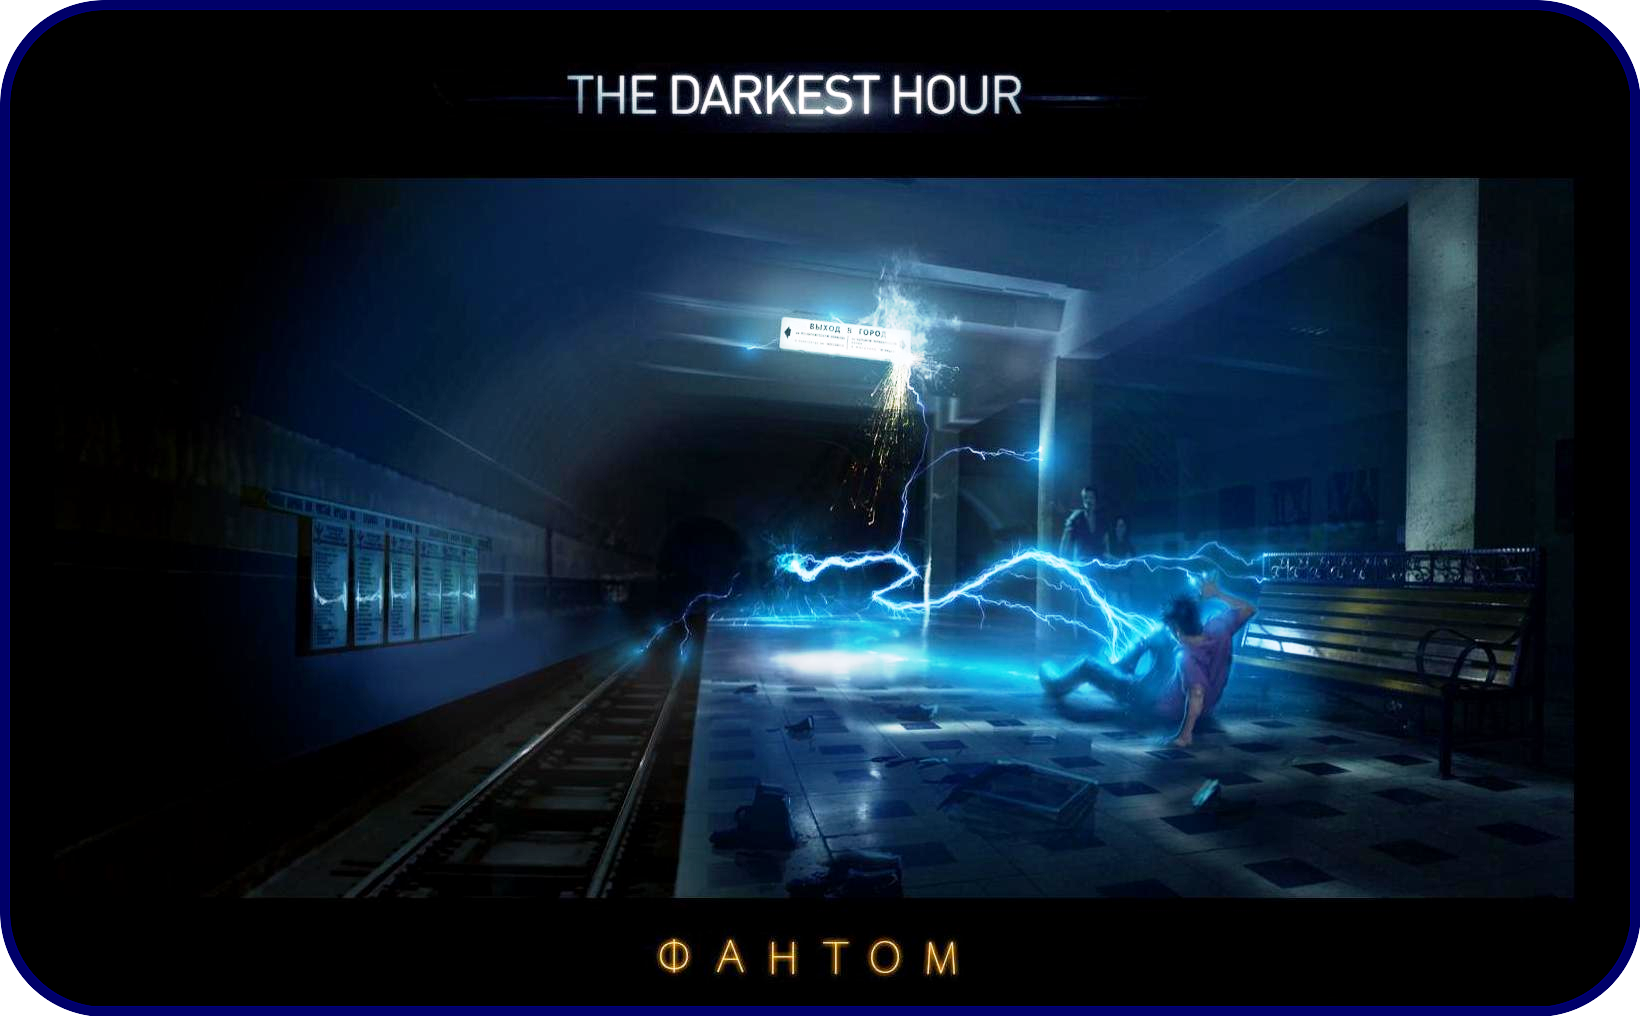 Science fiction фантом the darkest hour